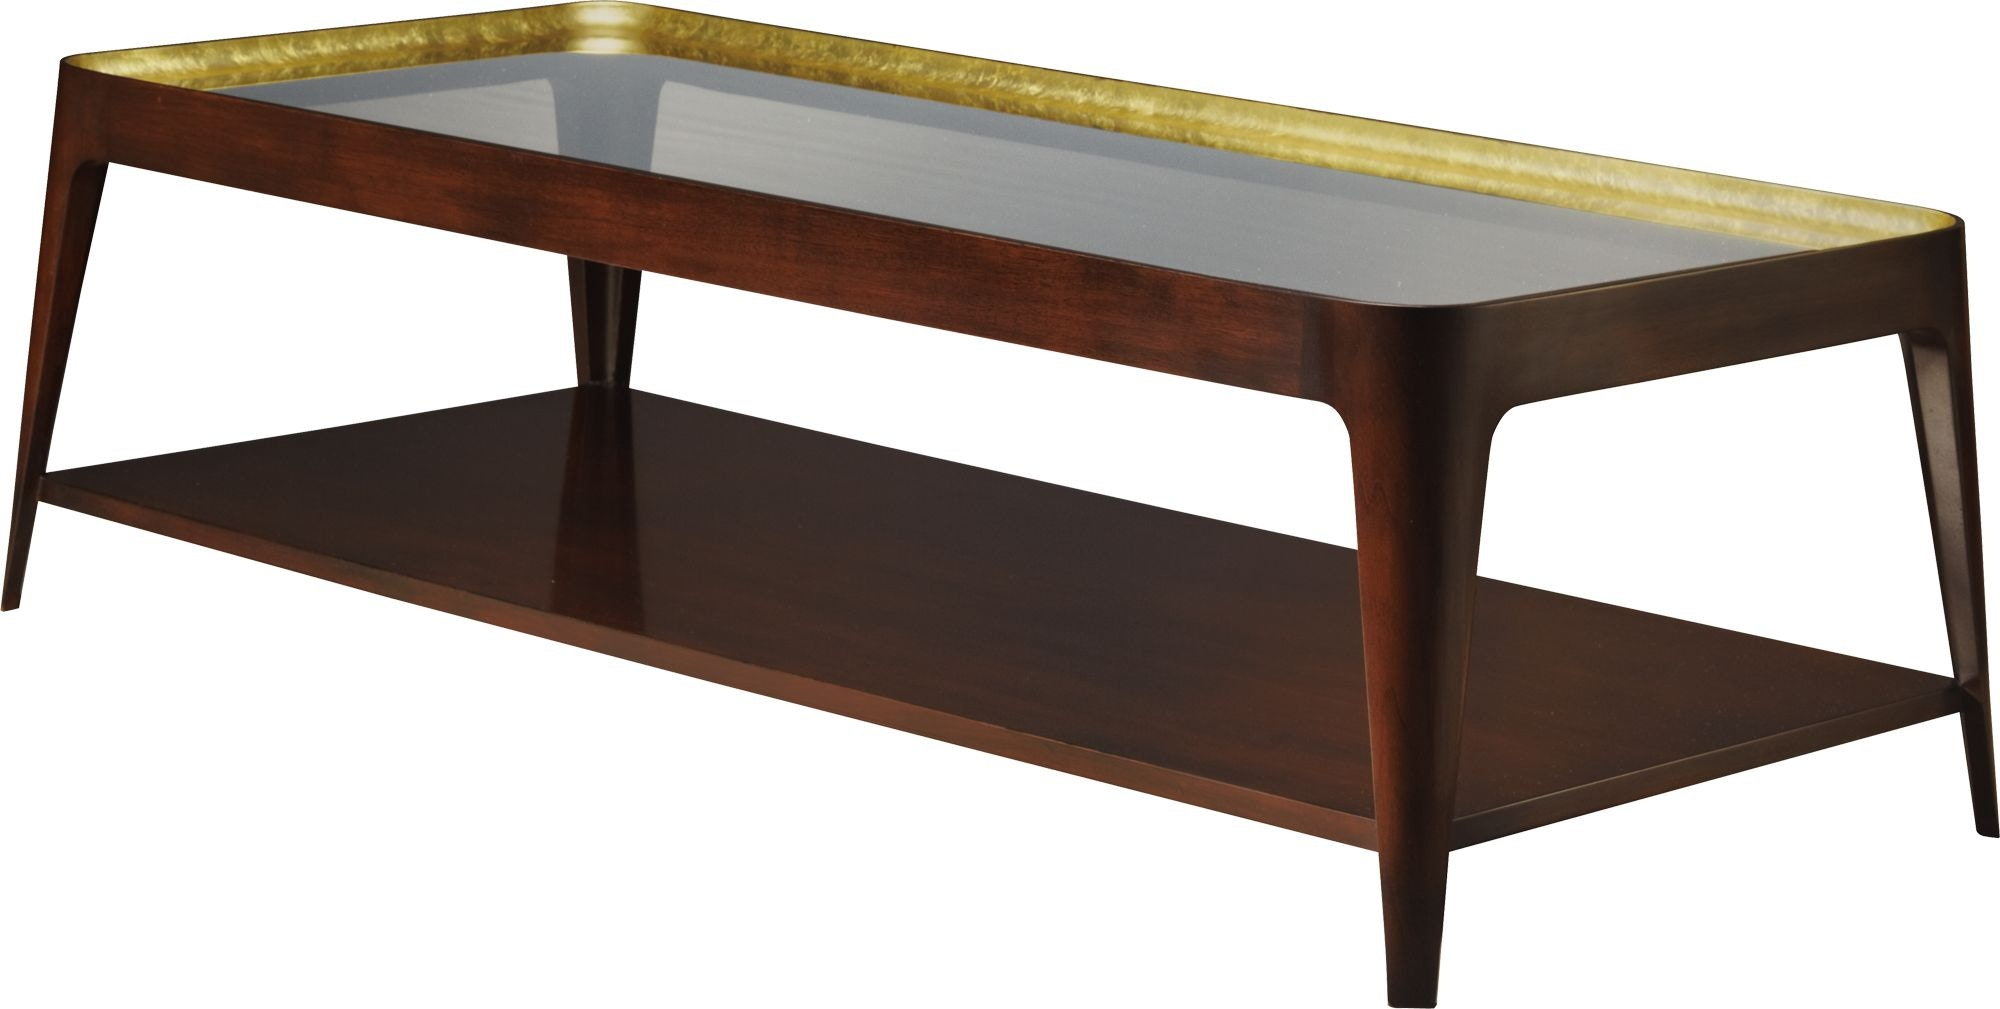 Baker Furniture 3654G Living Room Barbara Barry Shadow Coffee Table